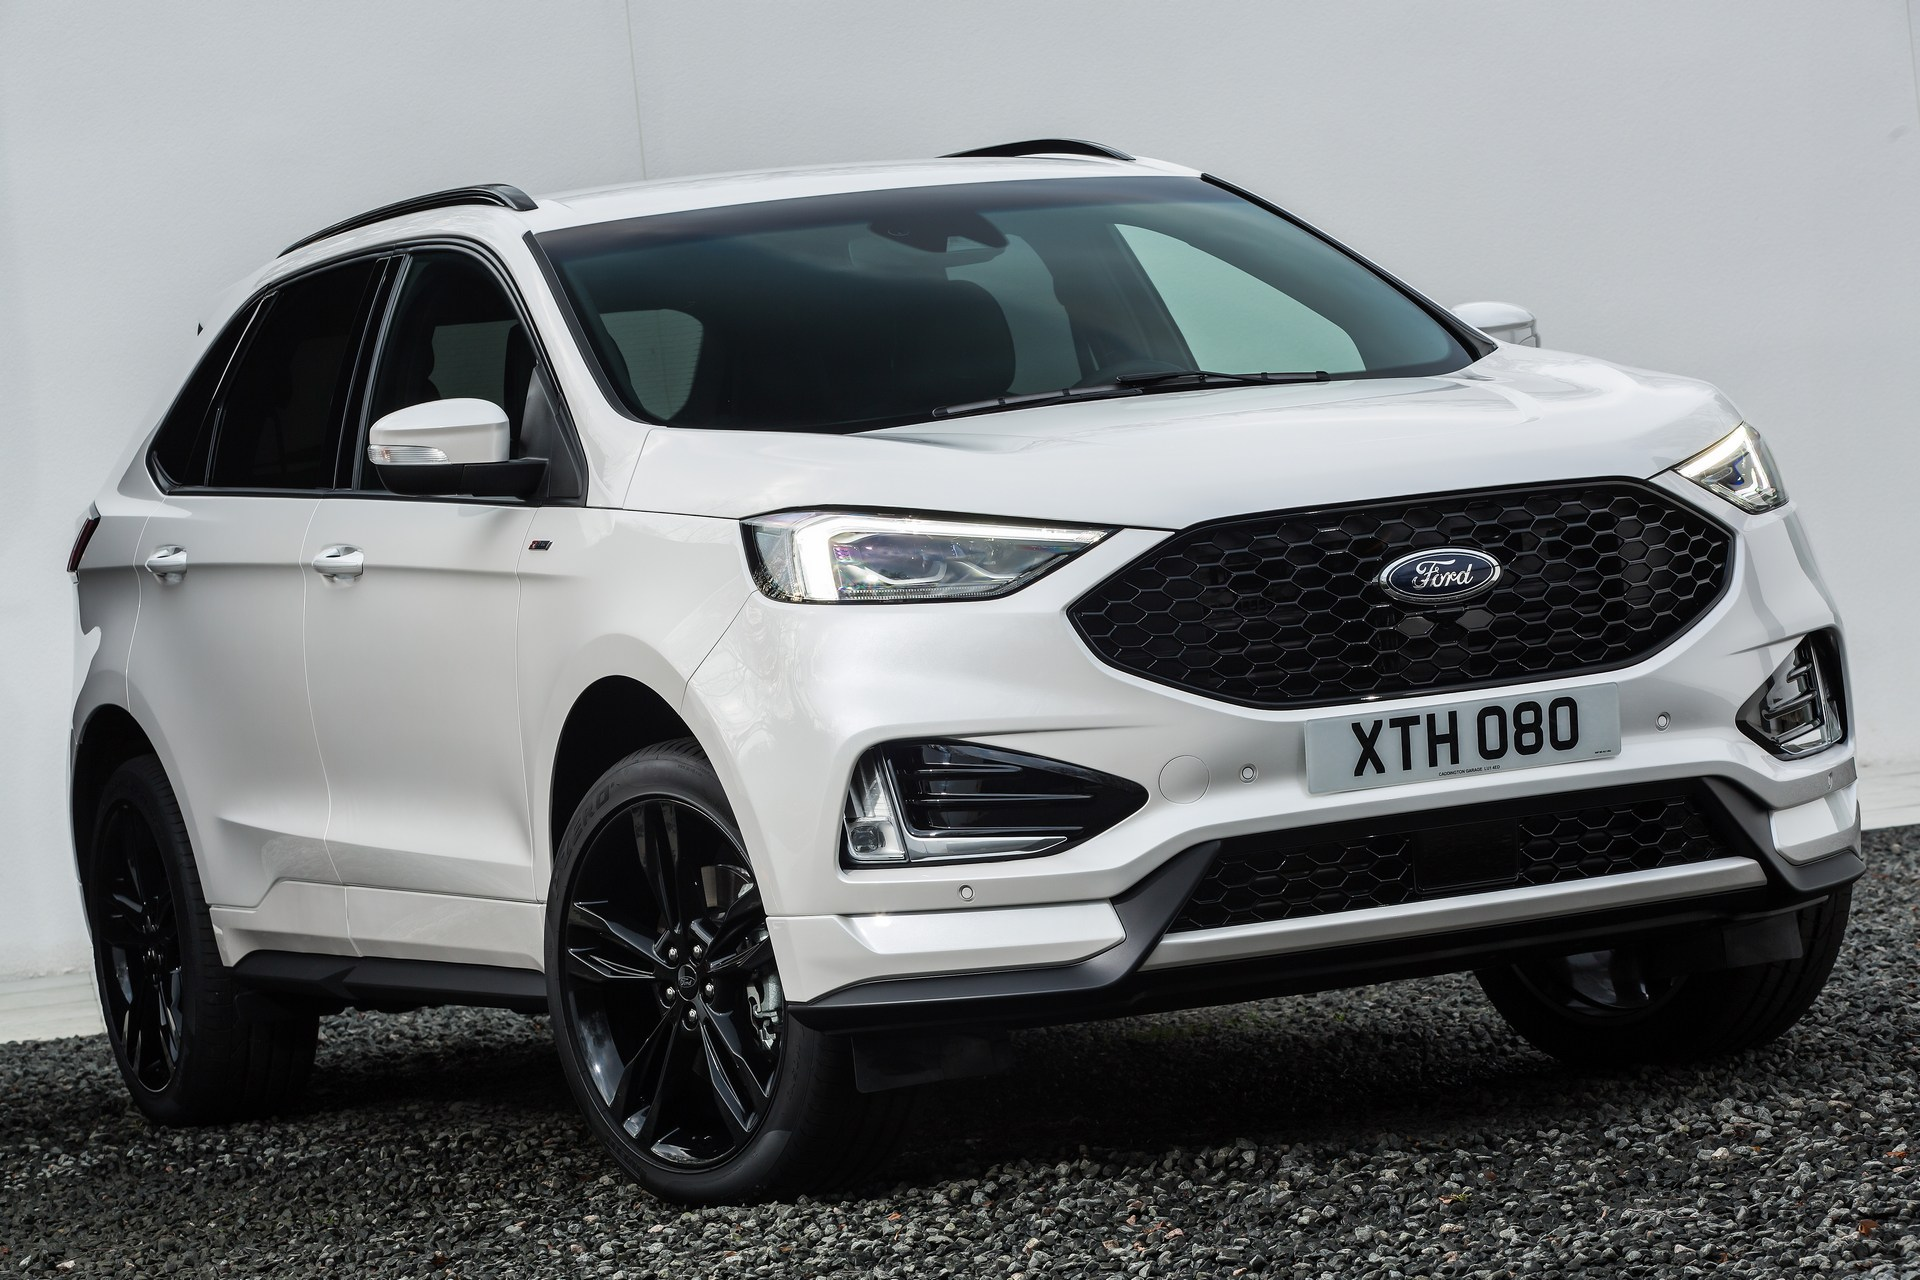 Ford Edge facelift 2018 Euro-Spec (9)